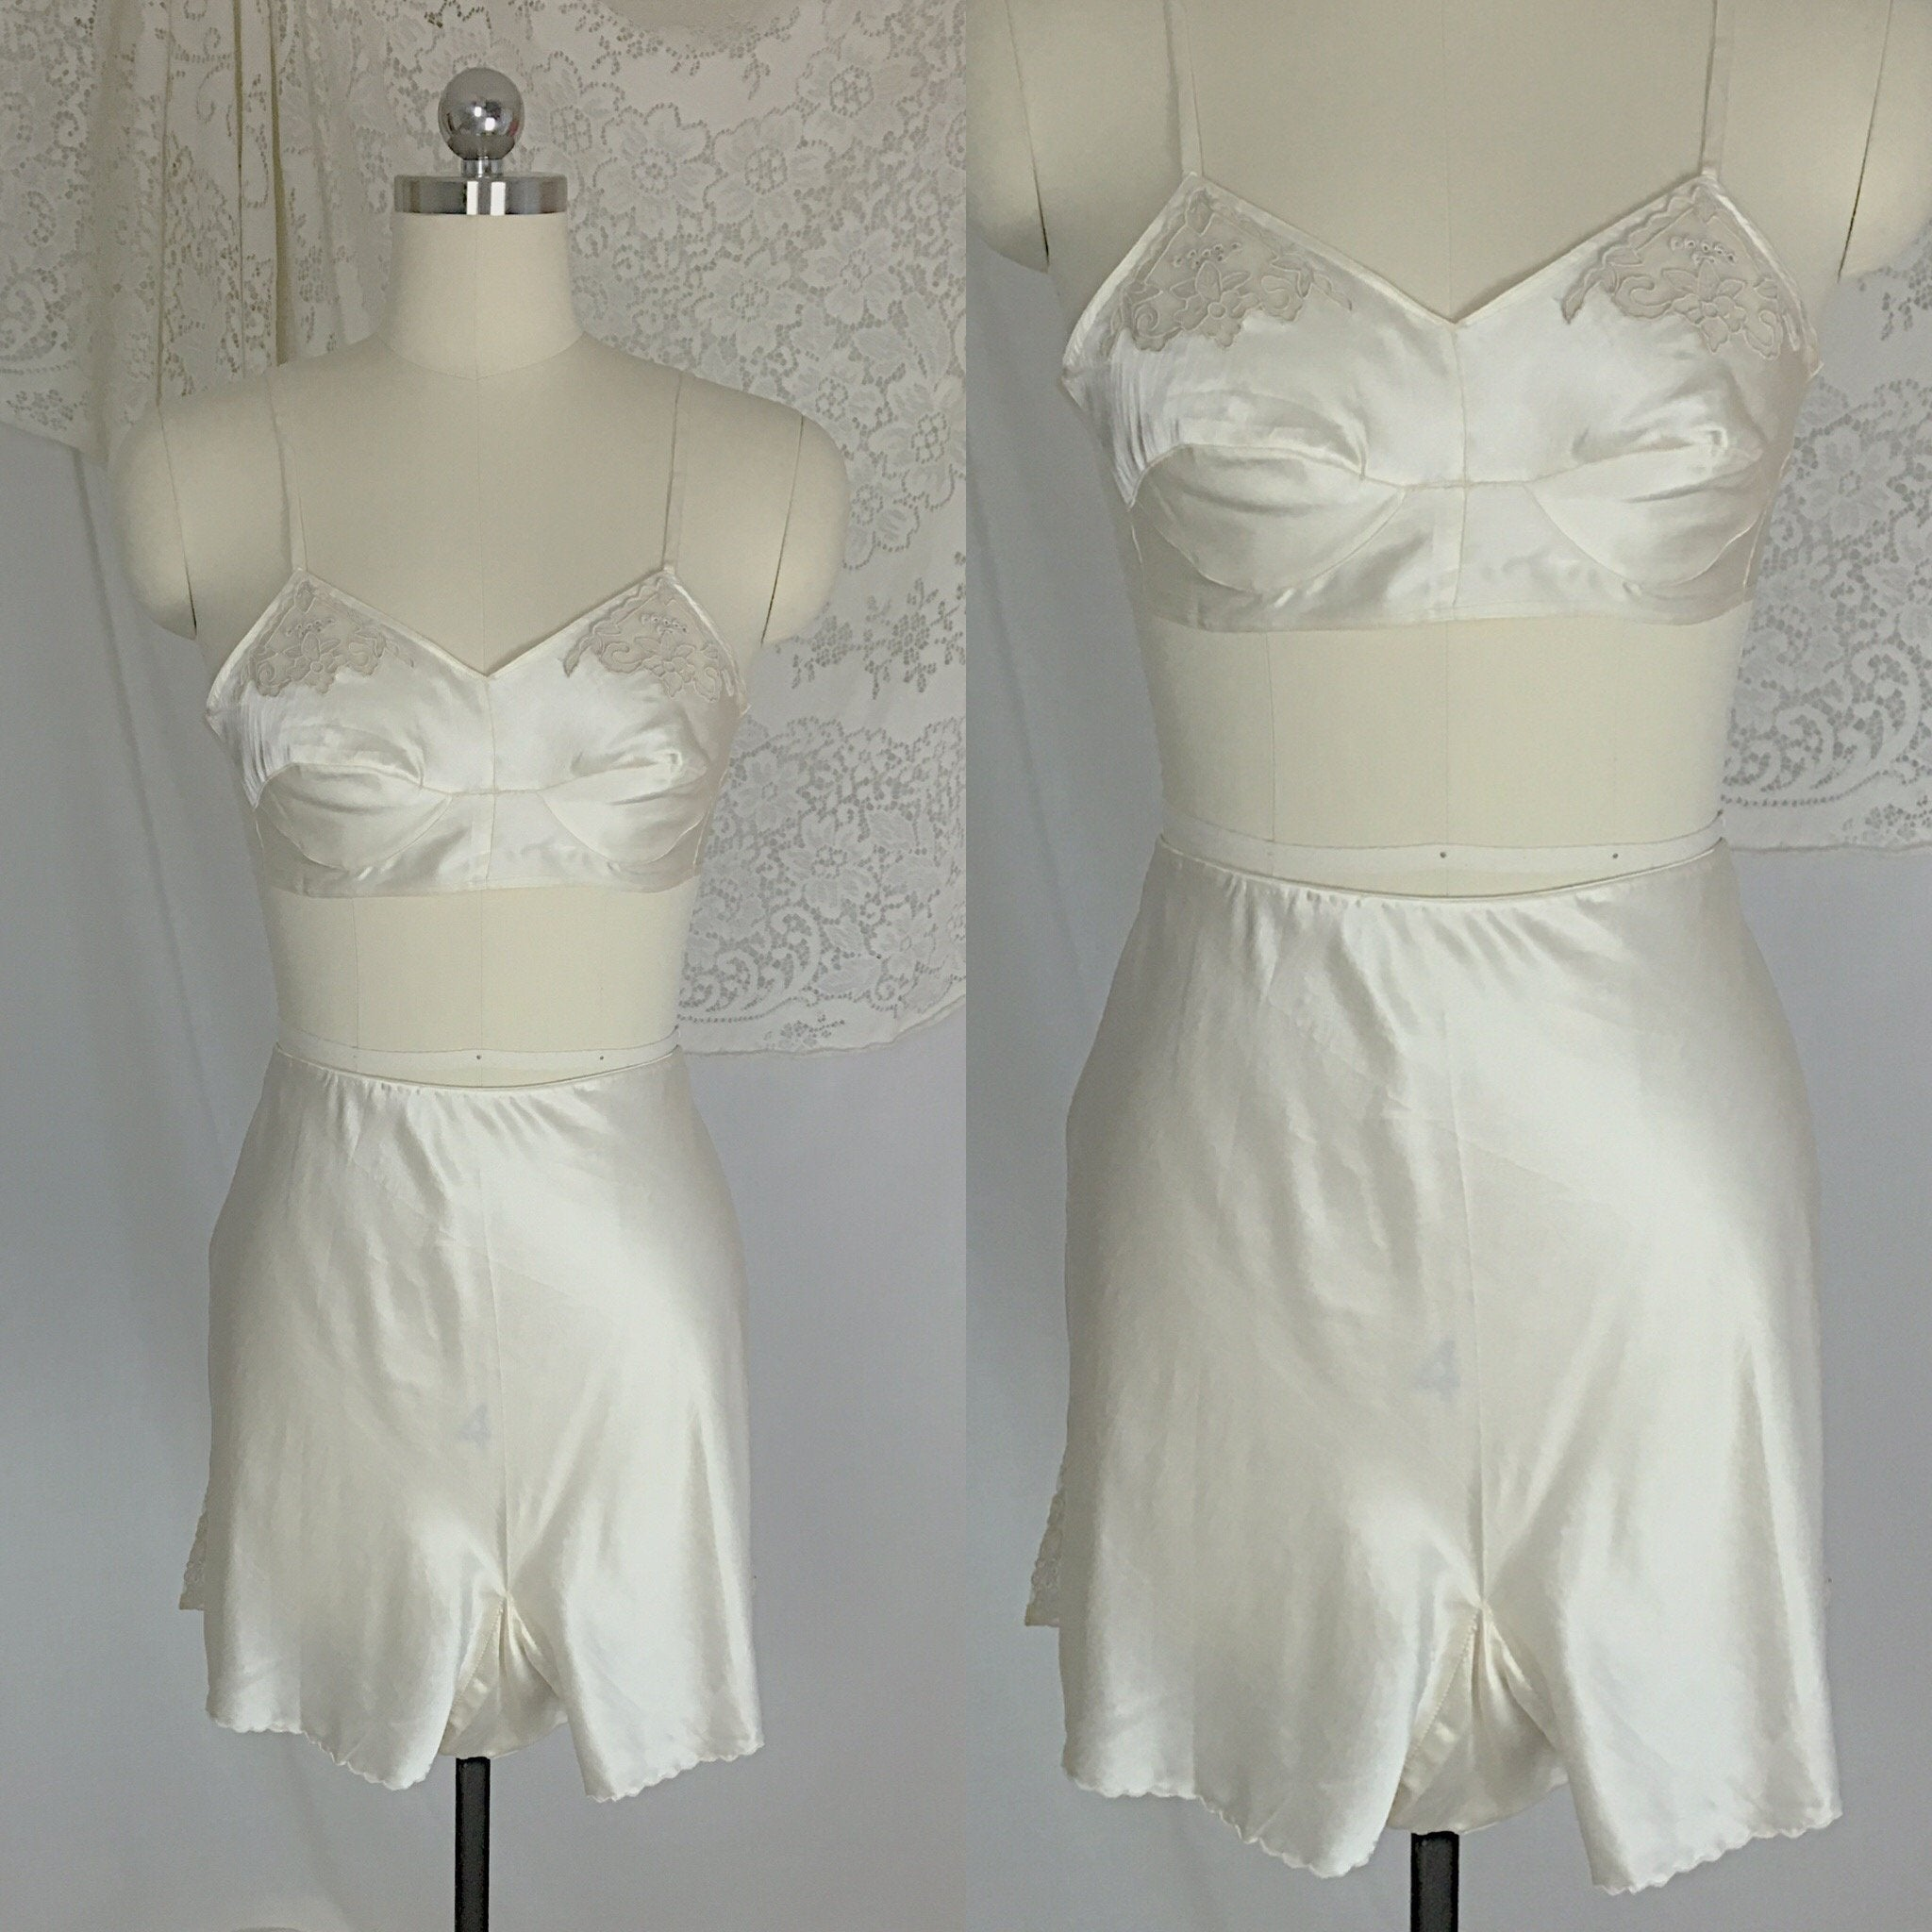 Vintage 1930's Lingerie Set | Ivory Silk with Ecru Embroidered Lace Slip with Bralette & Tap Pants | New in Box - H.C. Capwells | Size M - Daggers & Dames